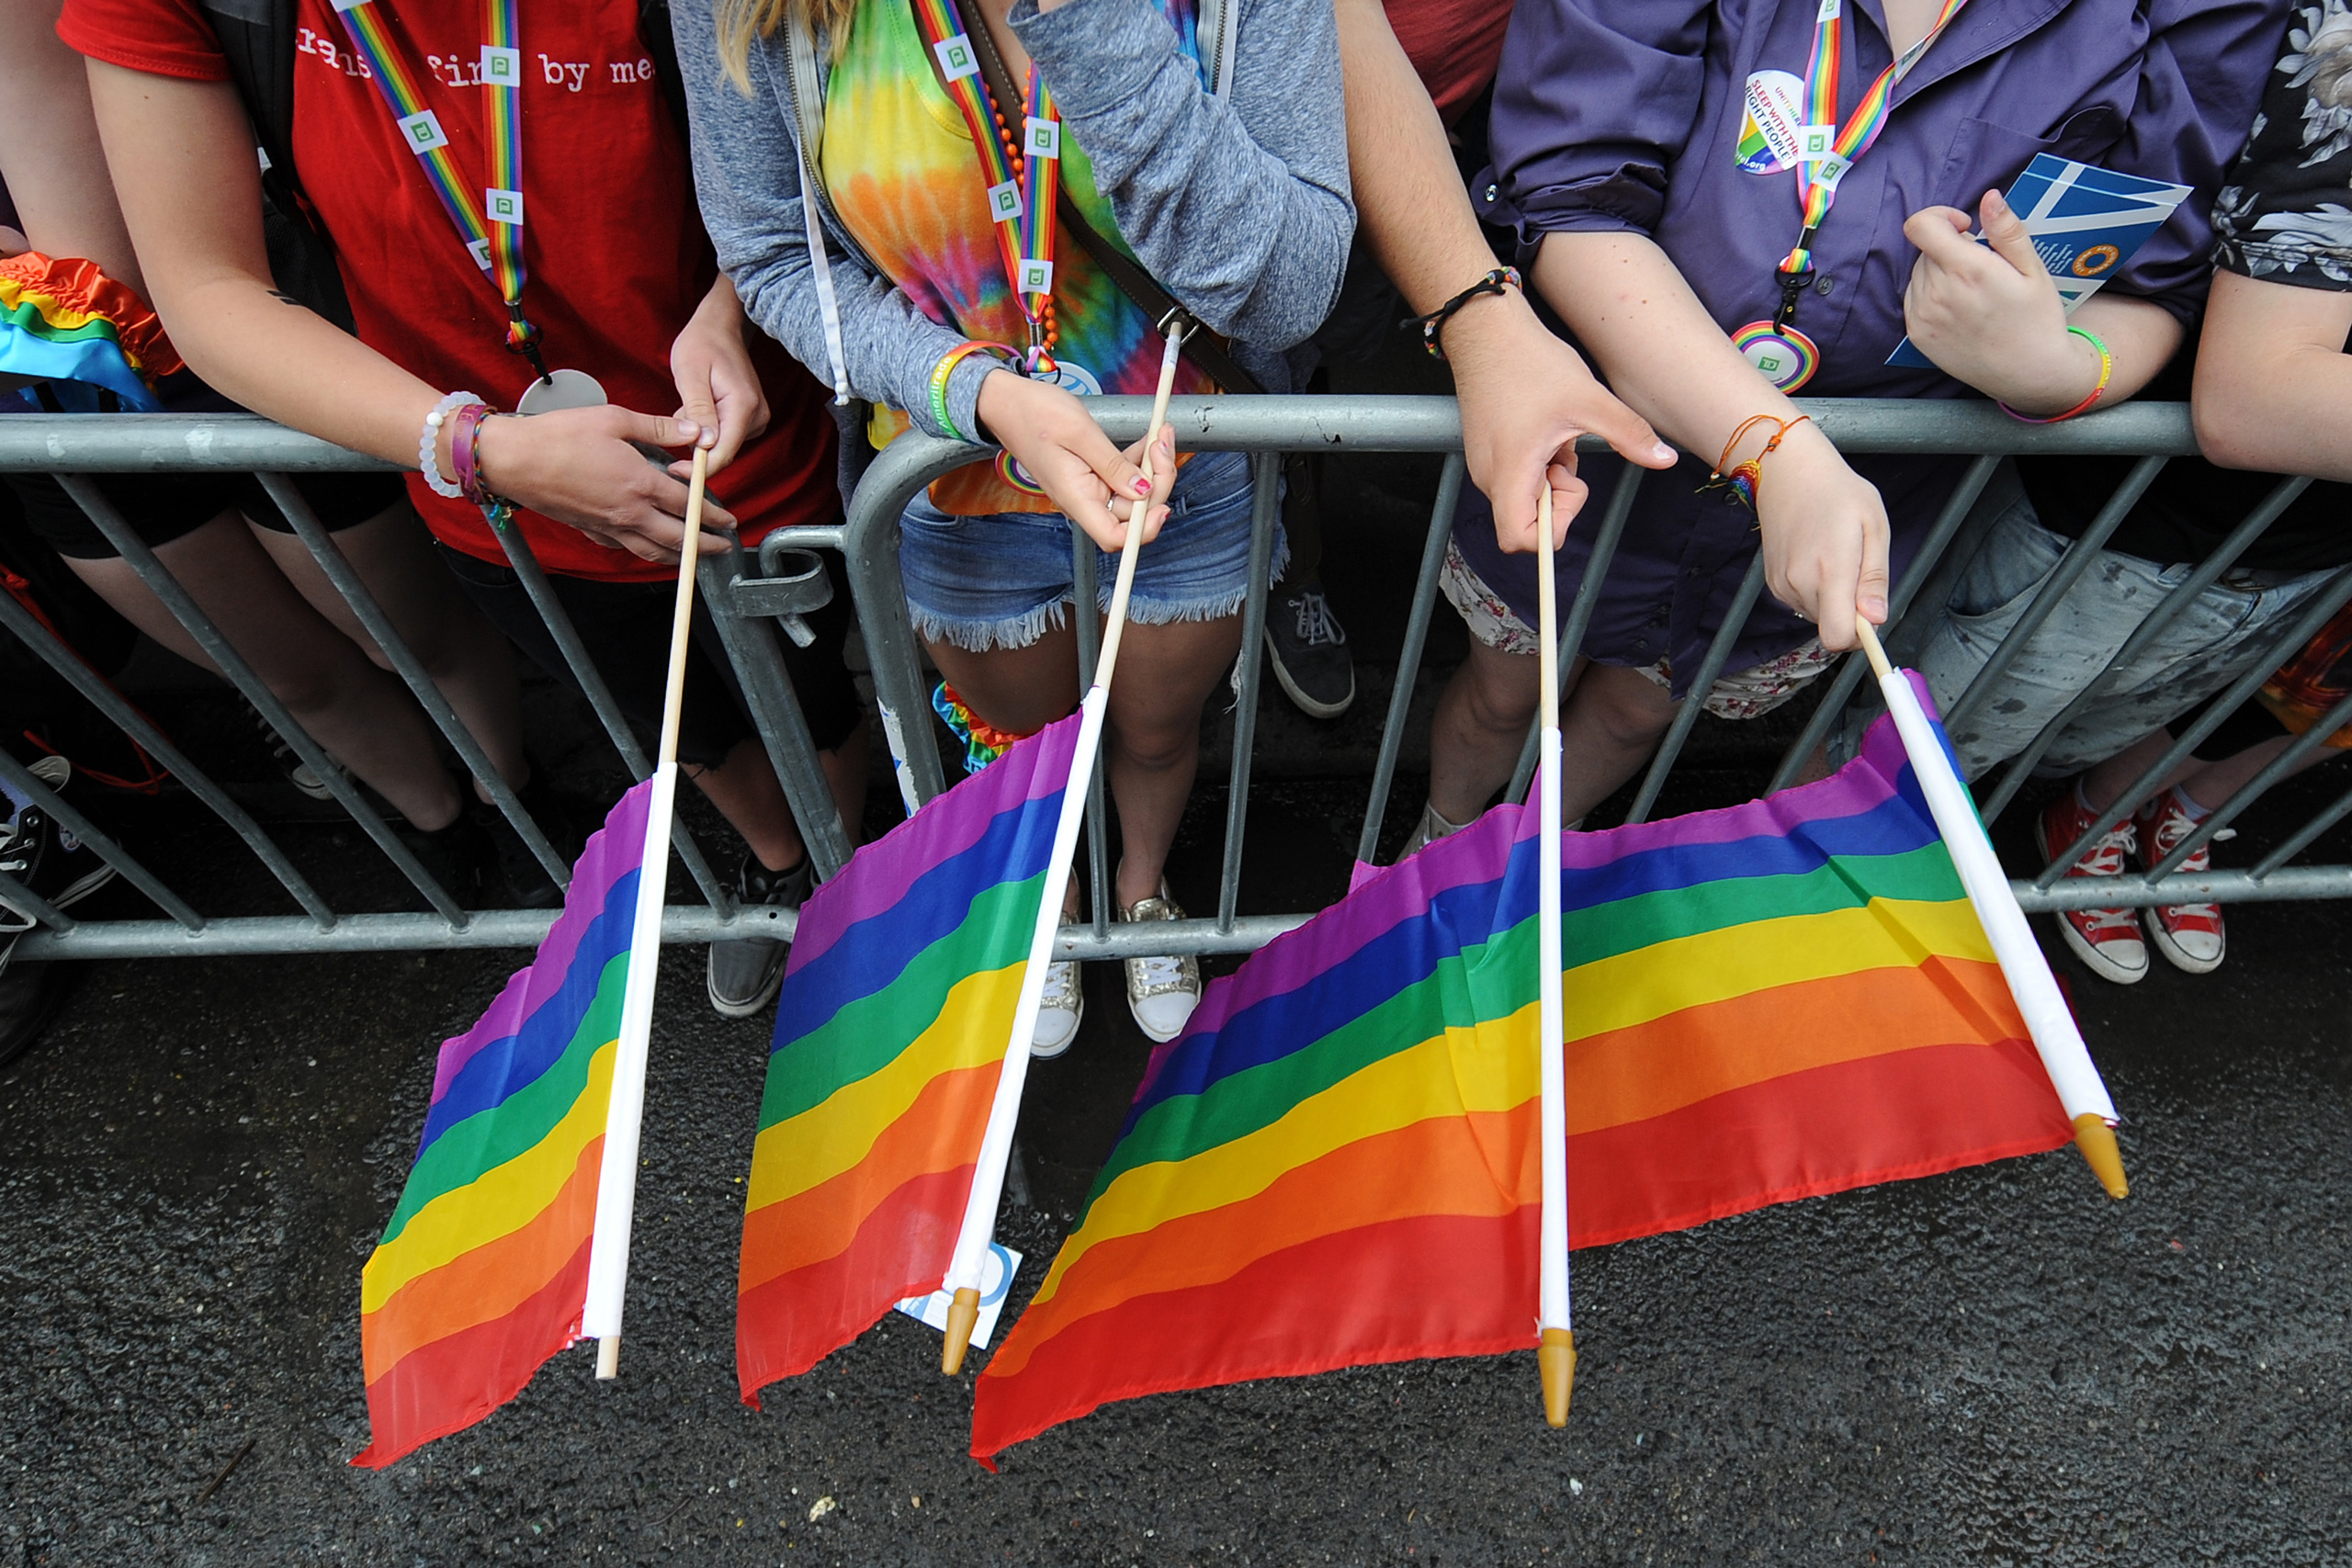 Parade marchers celebrate as they make their way down Fifth Avenue during the 2015 New York City Gay Pride Parade in New York on June 28, 2015.